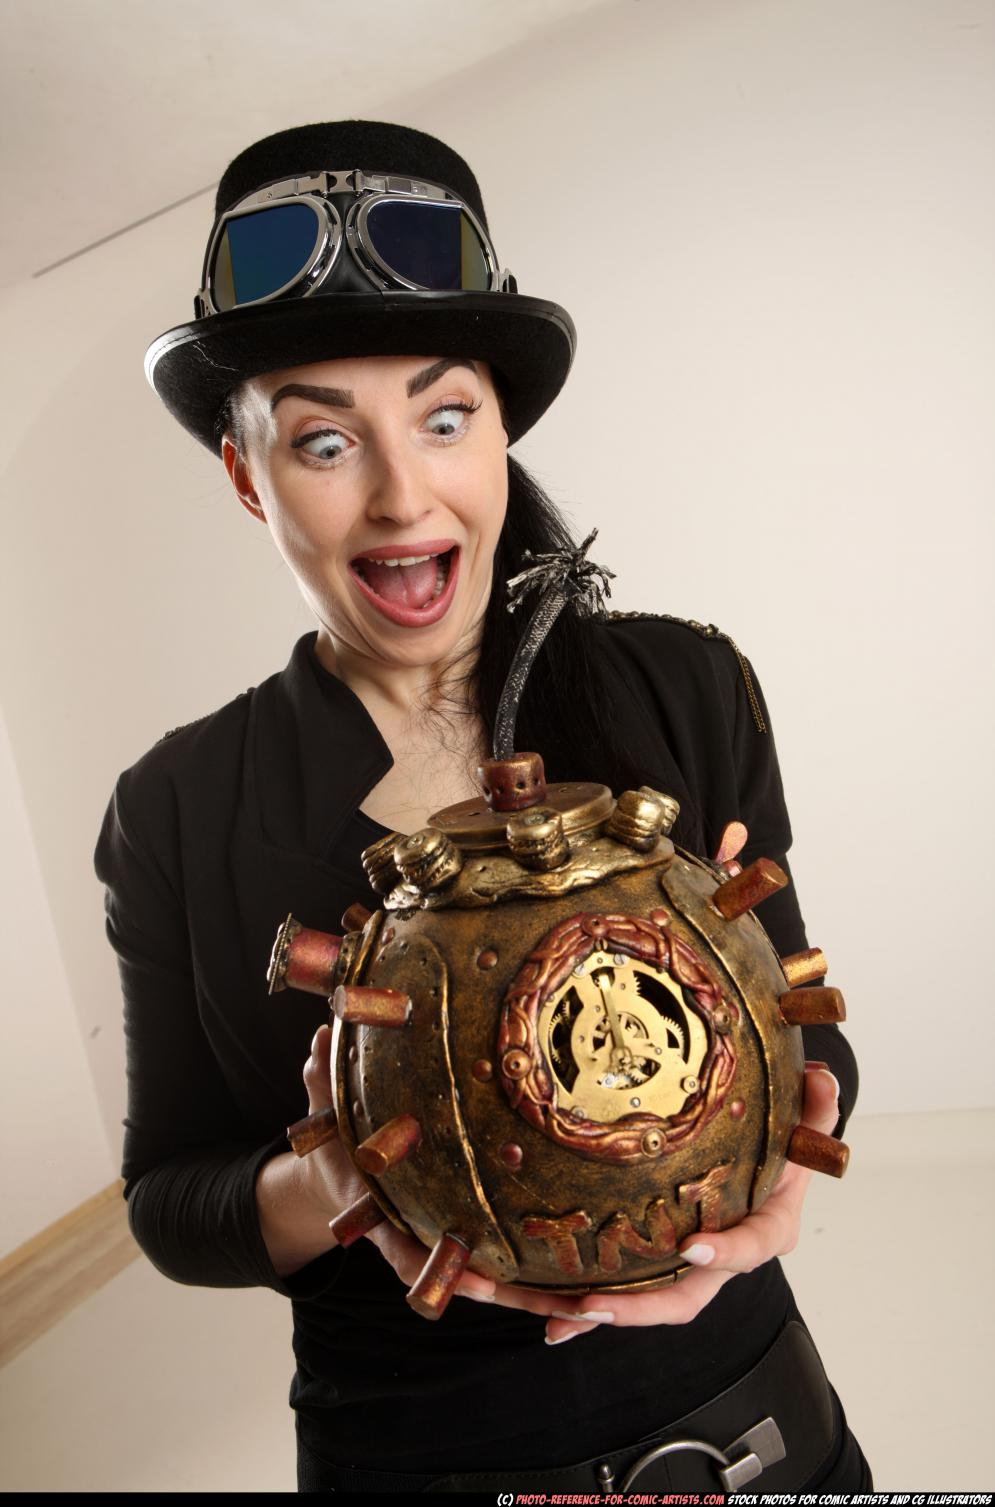 Image from Free Samples / May 2018 - 2017_02_claudia_steampunk_bomb_pose1_12.jpg